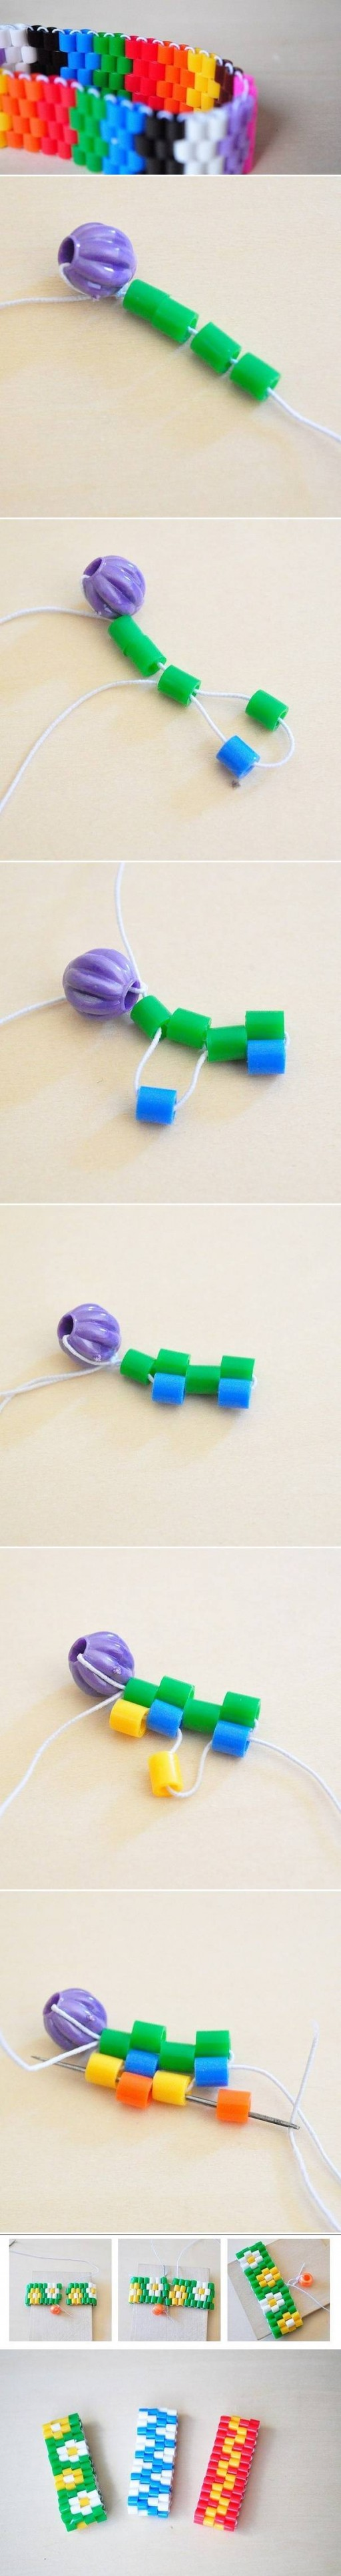 How To Make Colorful Bracelet step by step DIY tutorial instructions